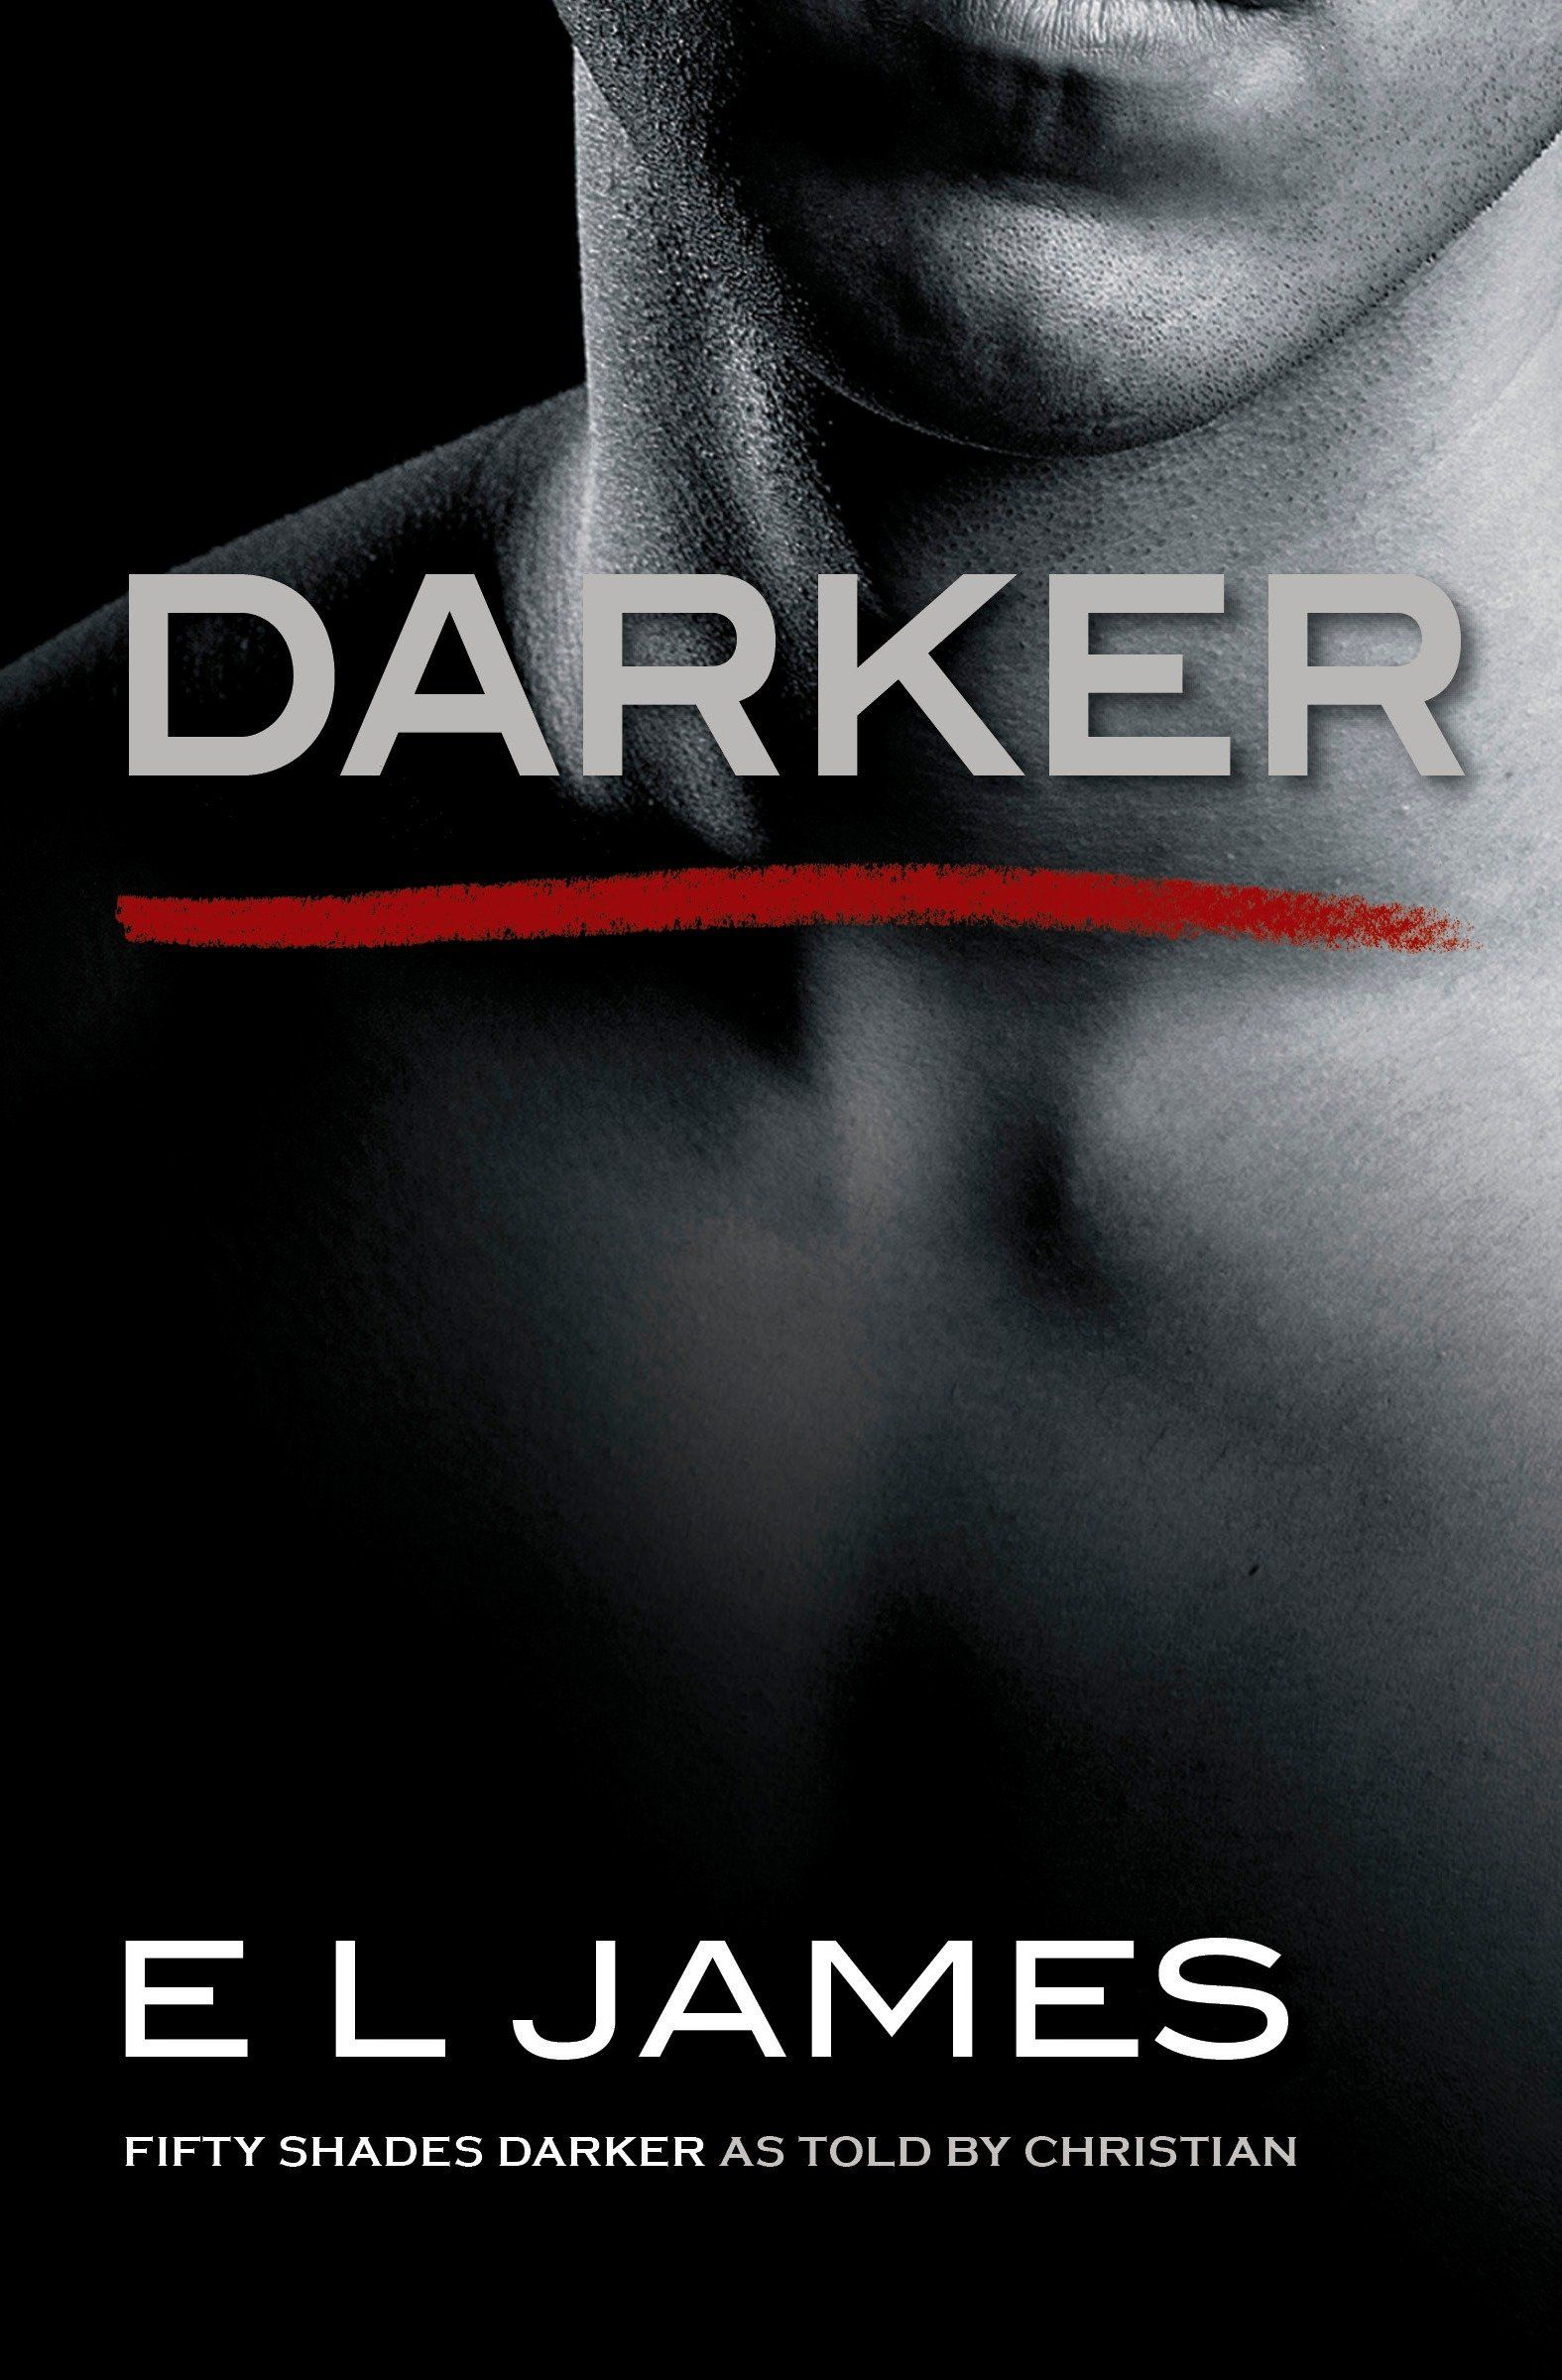 PDF] Darker (Fifty Shades as Told by Christian #2) by E L